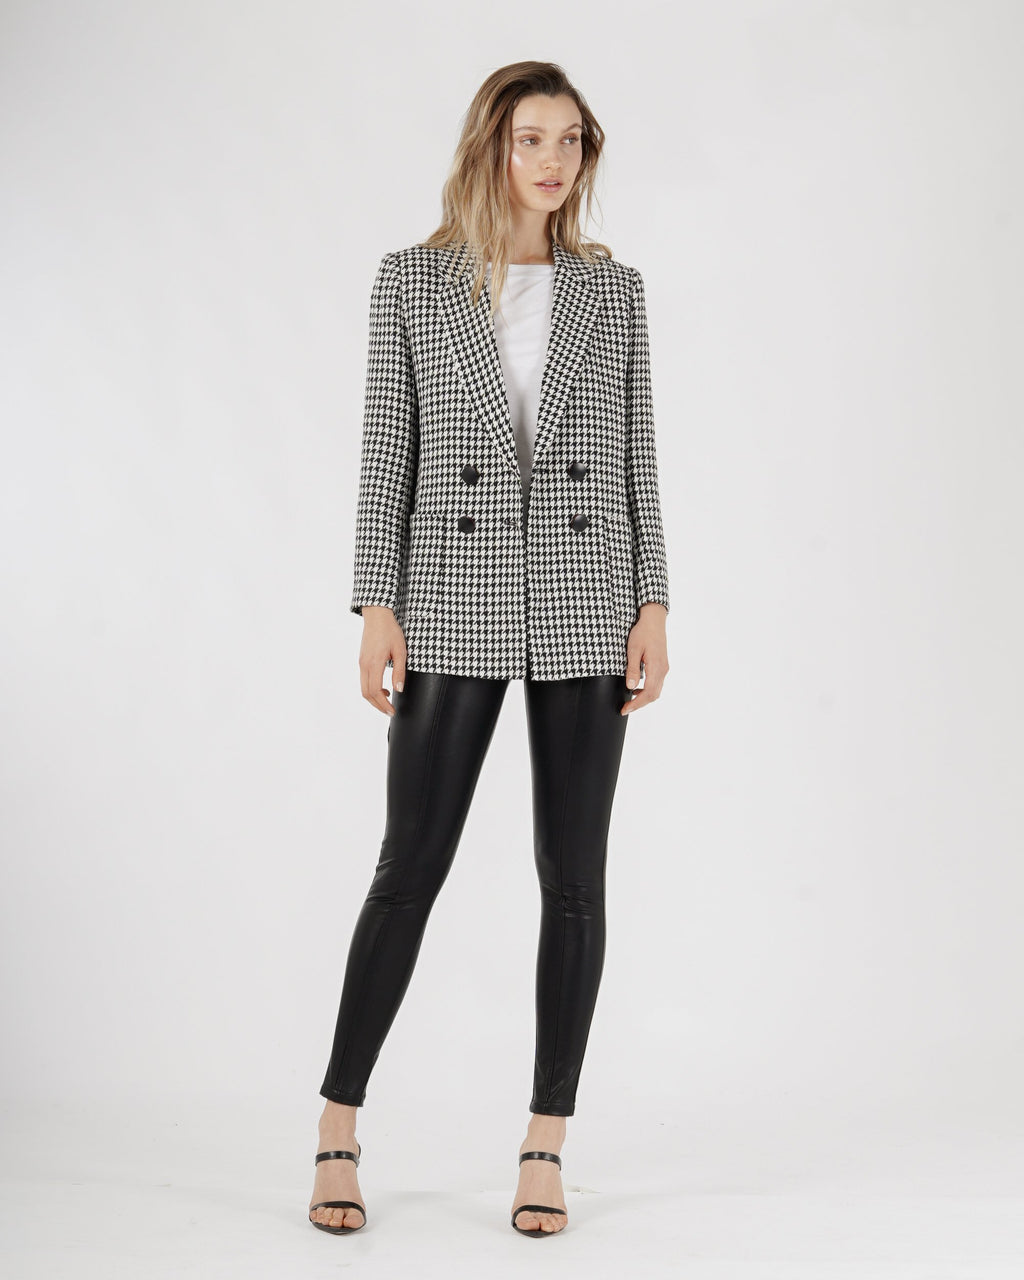 amelius houndstooth black and white blazer